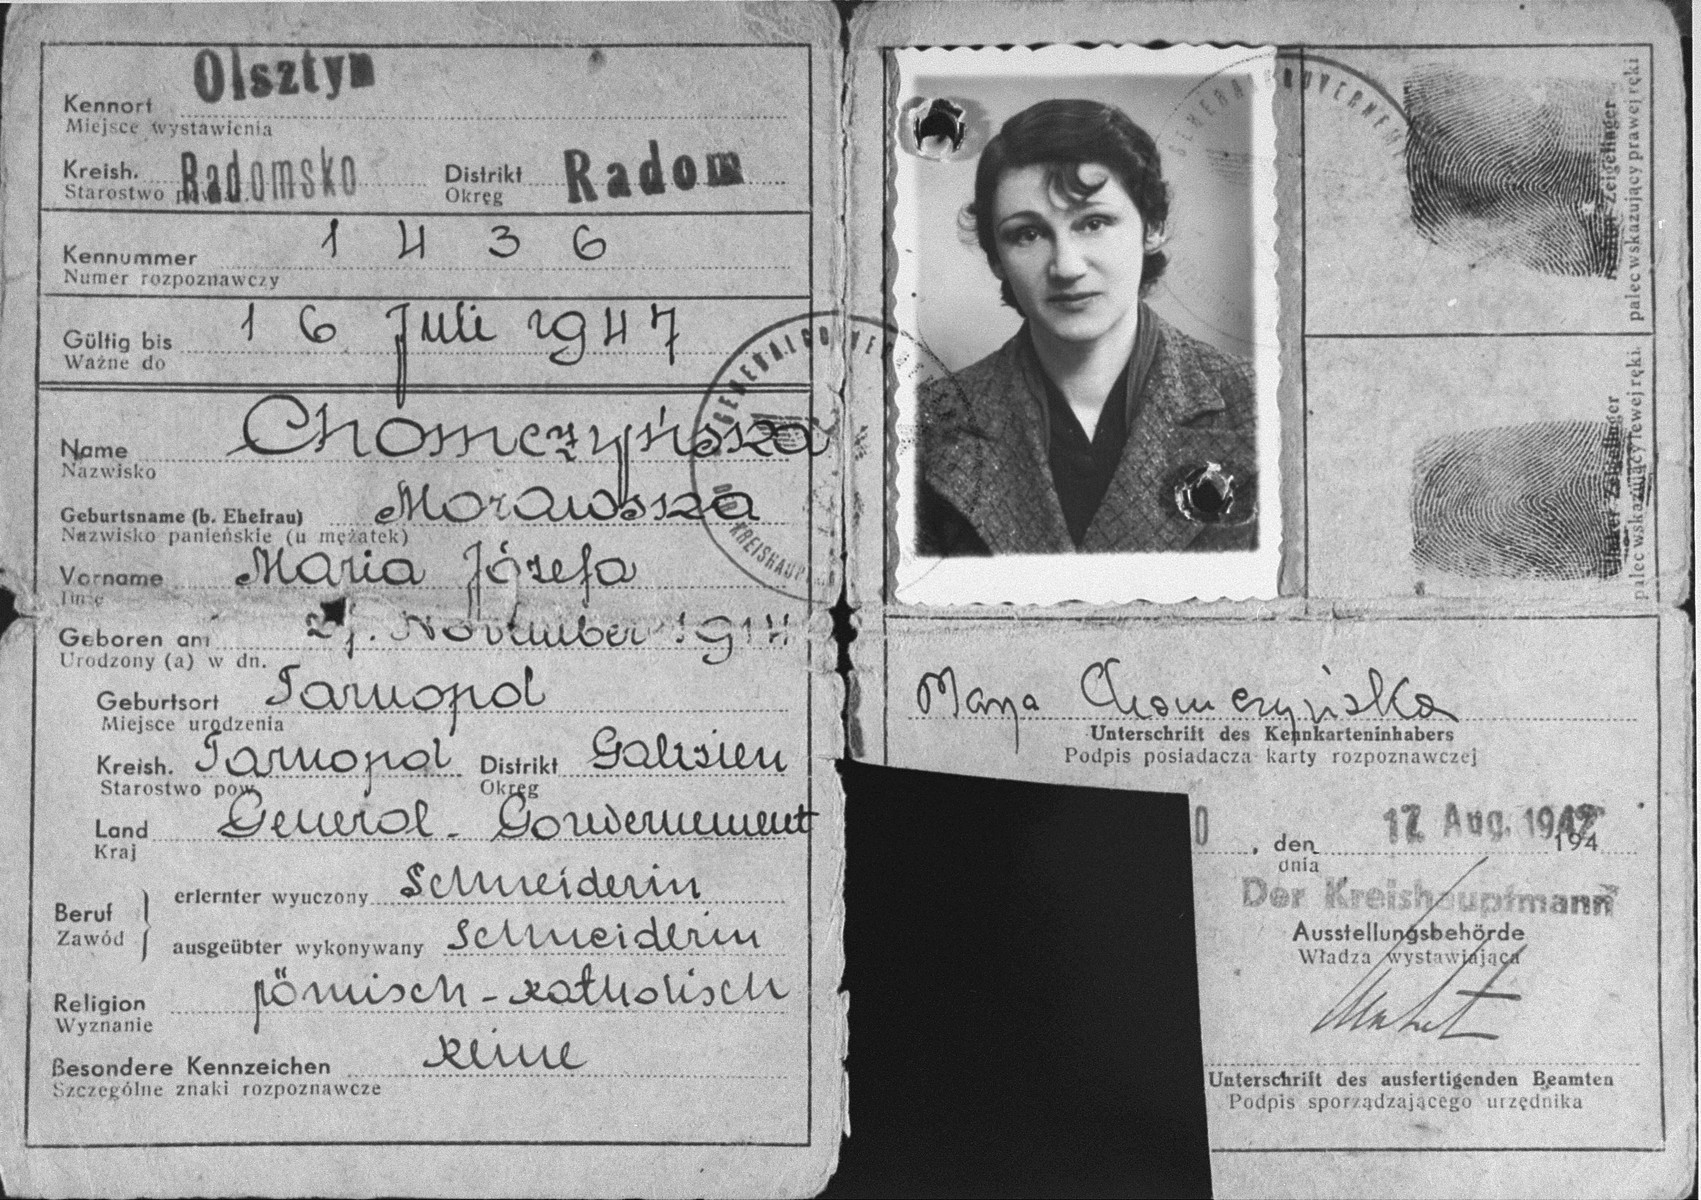 False identification papers used by the donor's wife, Maria Minc Morgenstern, during her years of hiding in occupied Poland.  Minc lived under the assumed name of Maria Chomczynski.